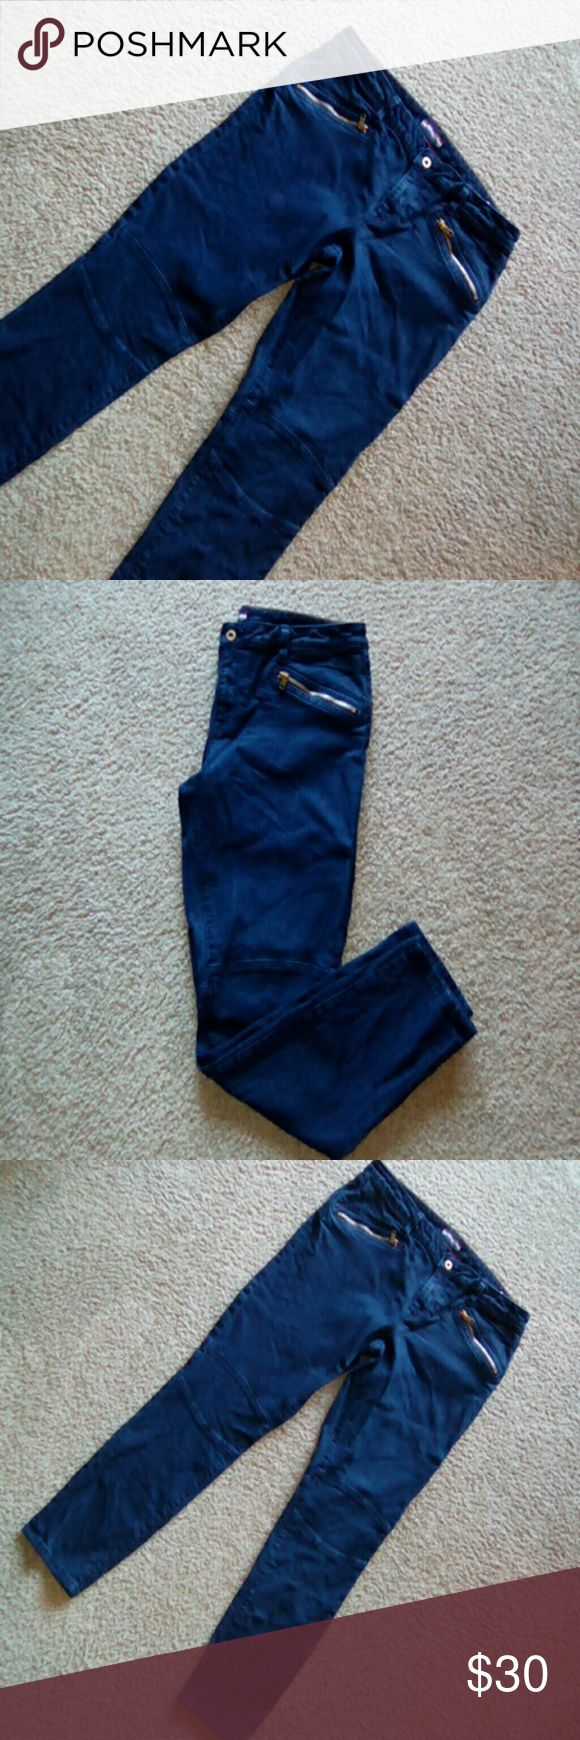 Tommy Hilfiger denim jeans Tommy Hilfiger denim jeans. In size 14. Waist 37 inches. Rise 9 inches. Length 29 inches. Skinny leg. Beautiful Tommy Hilfiger dark denim jeans with gold zipper pockets in front and a denim patch design over knees. In great condition. Tommy Hilfiger Jeans